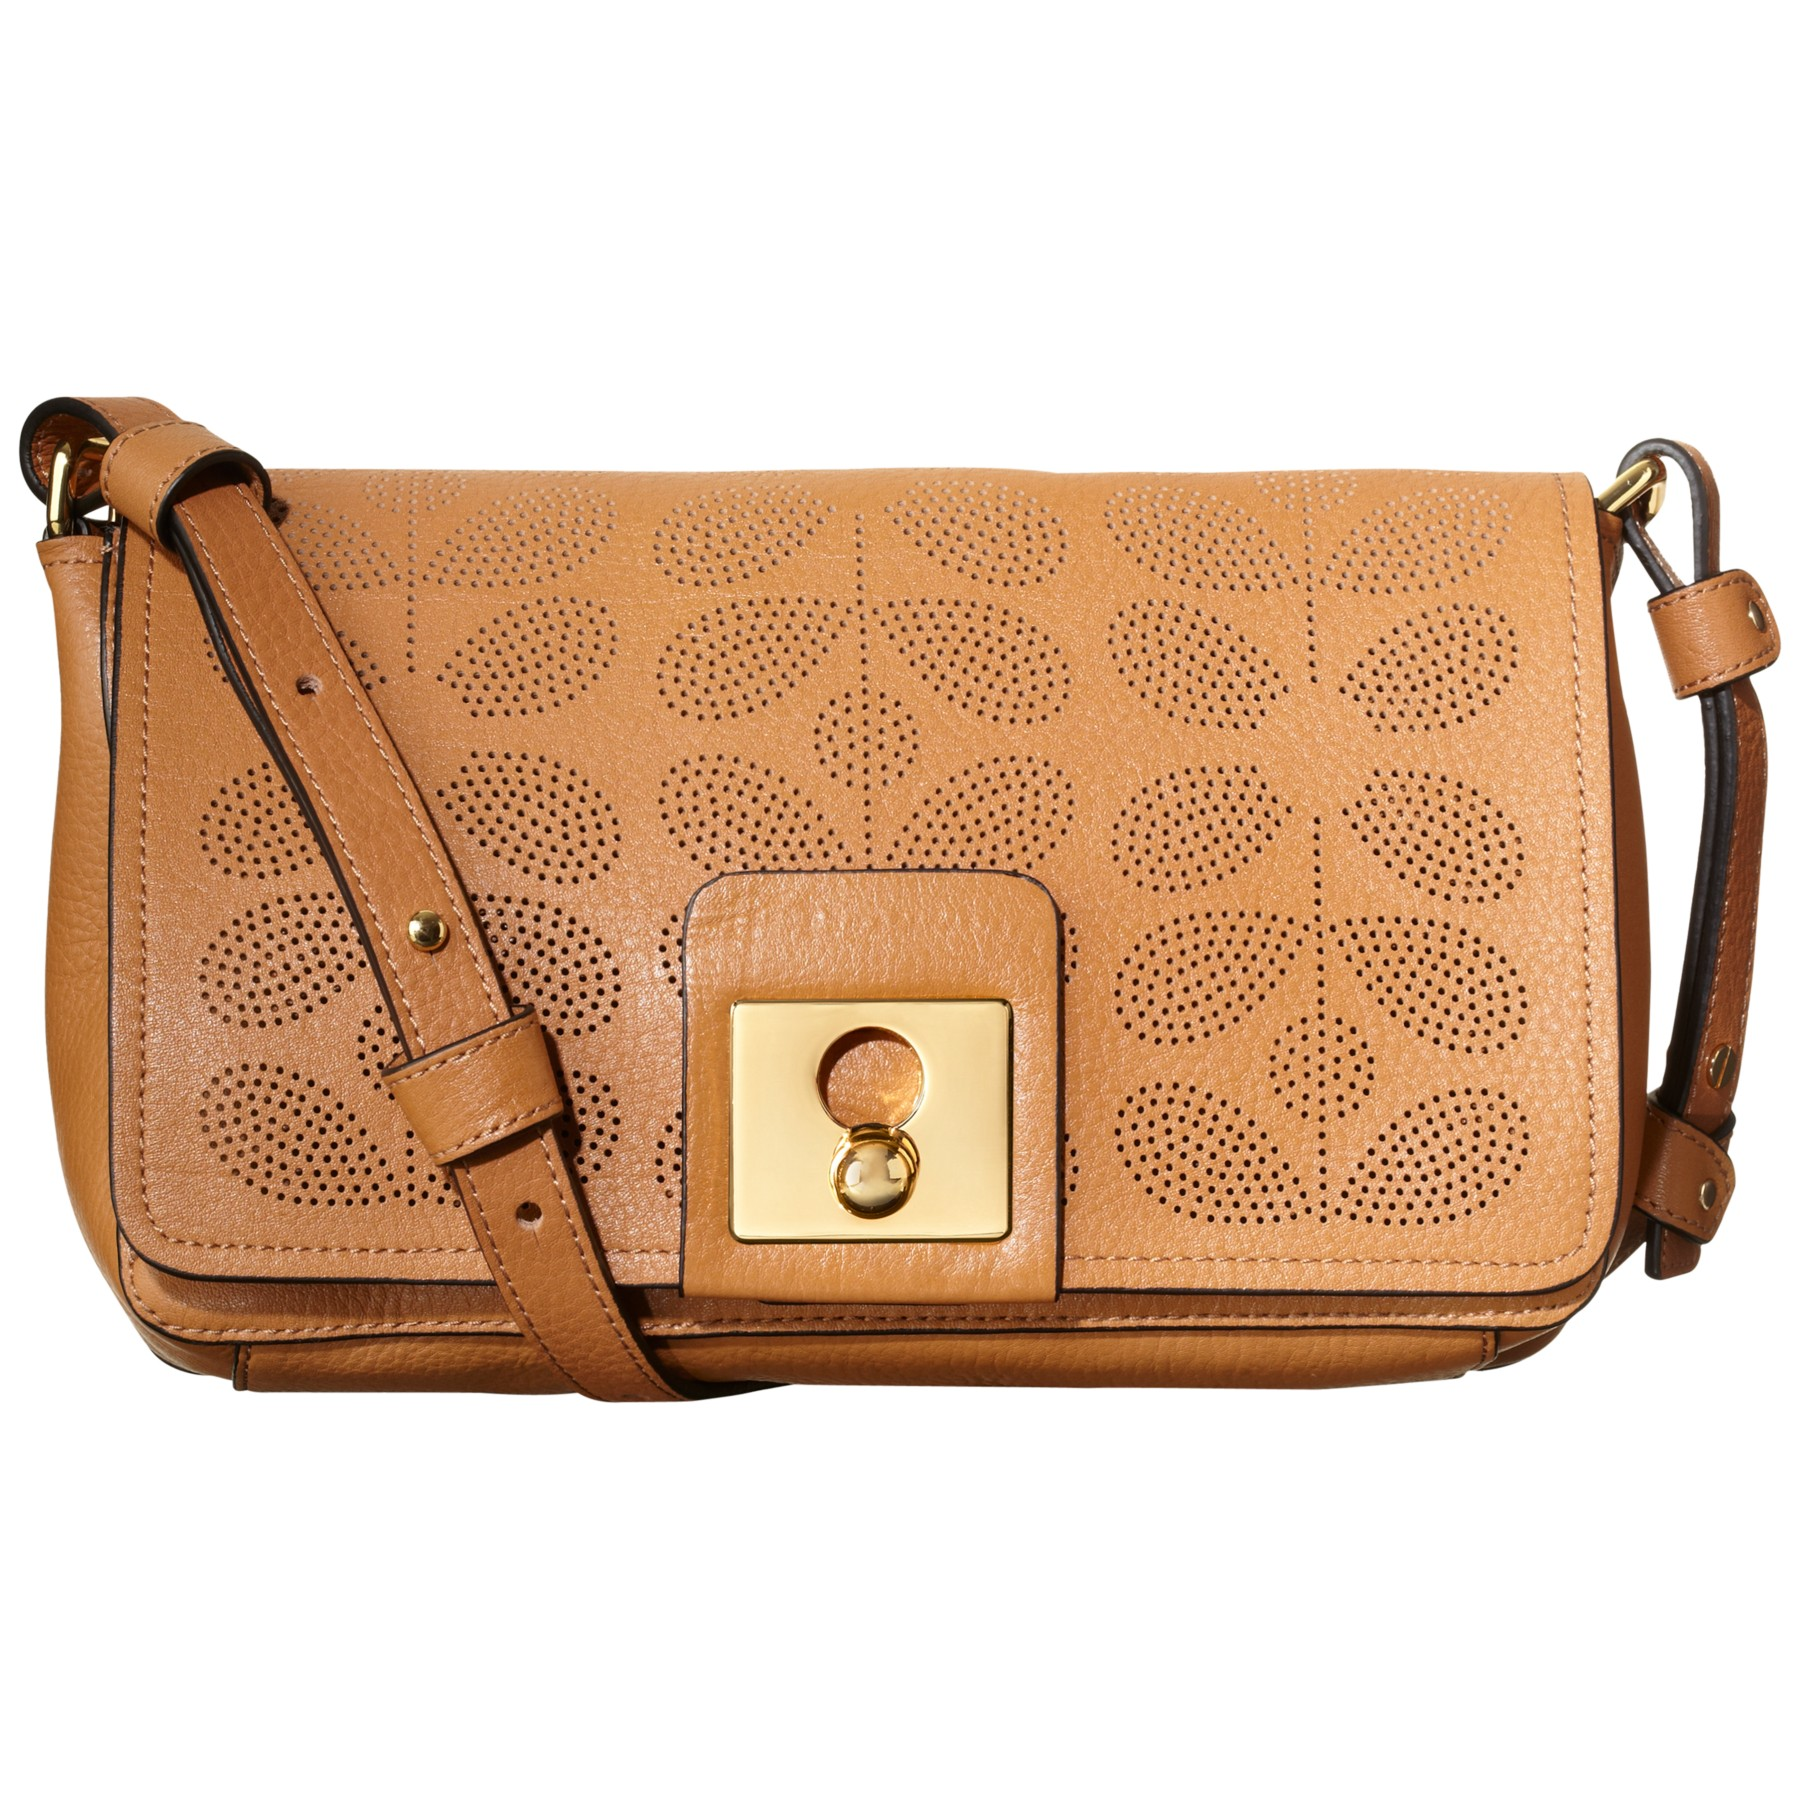 911bbf8c76 Orla Kiely Sixties Stem Punched Leather Robin Bag in Brown - Lyst